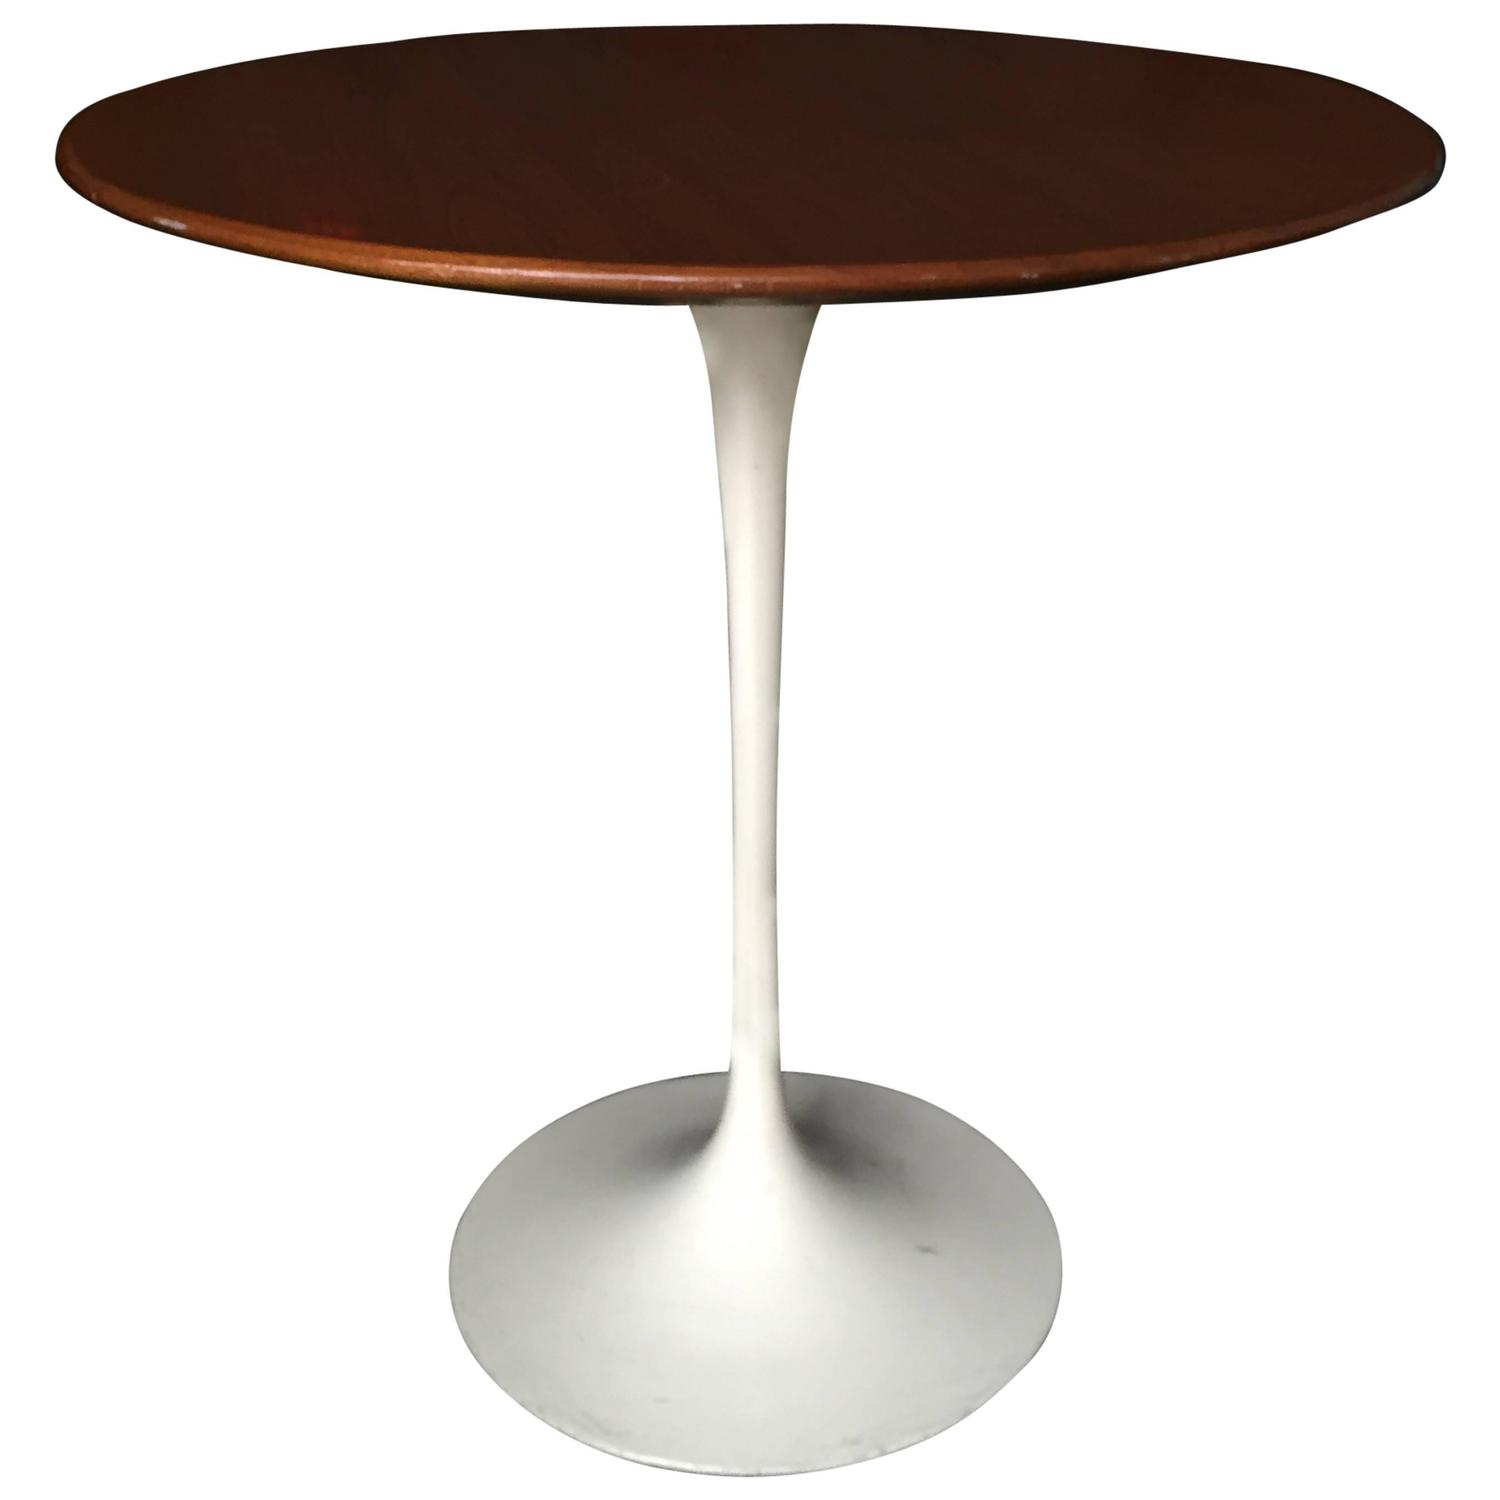 knoll saarinen side table with walnut top circa 1960 at 1stdibs. Black Bedroom Furniture Sets. Home Design Ideas